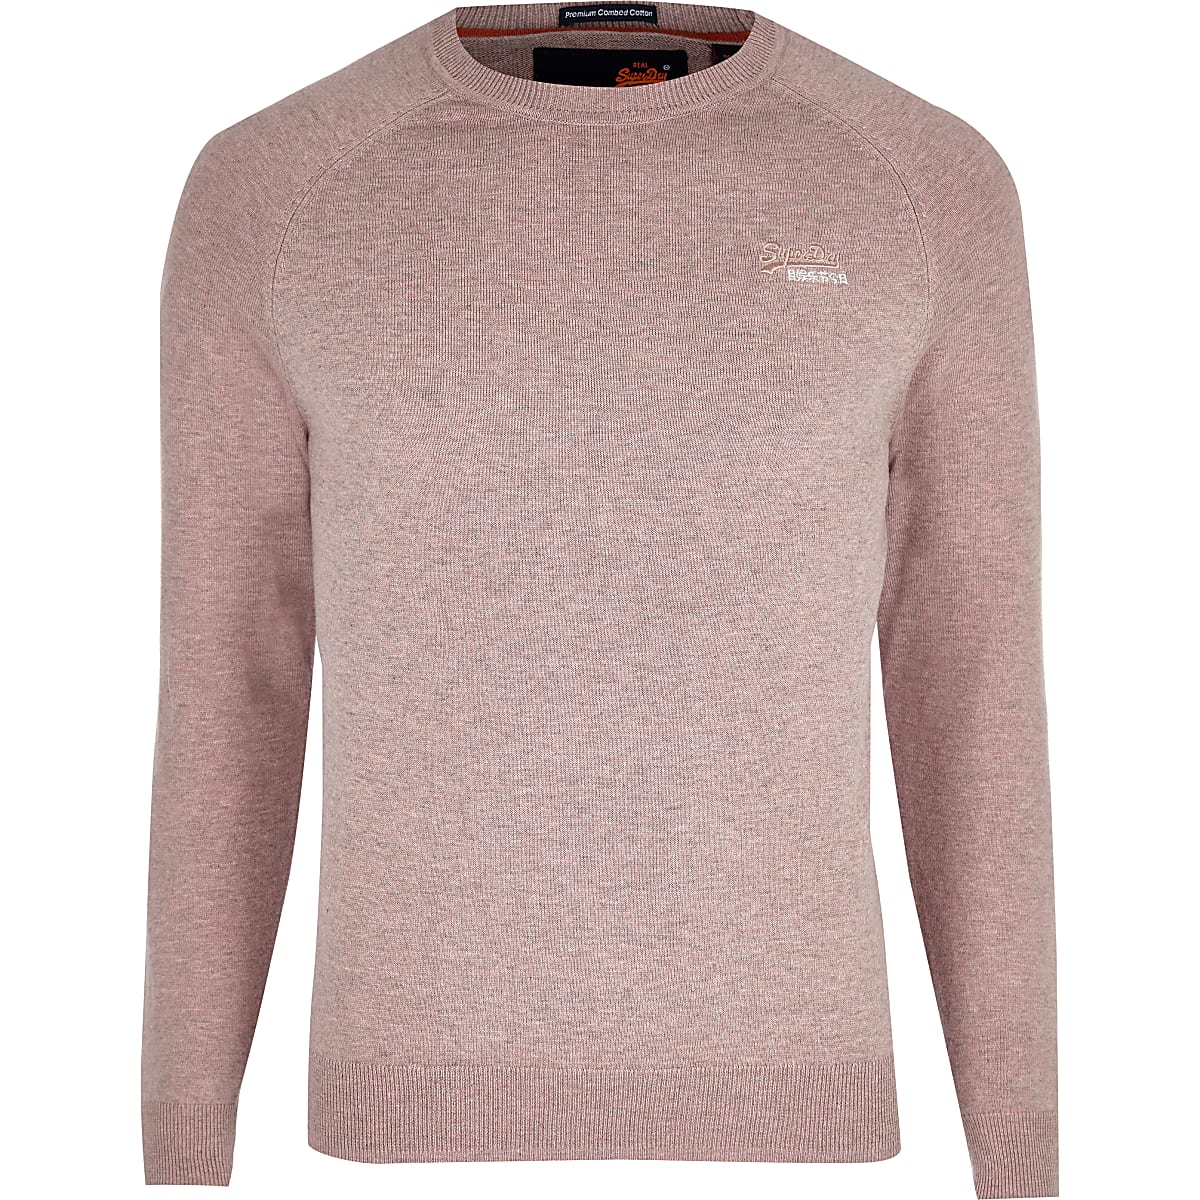 f393a8b989a Superdry pink logo embroidered jumper